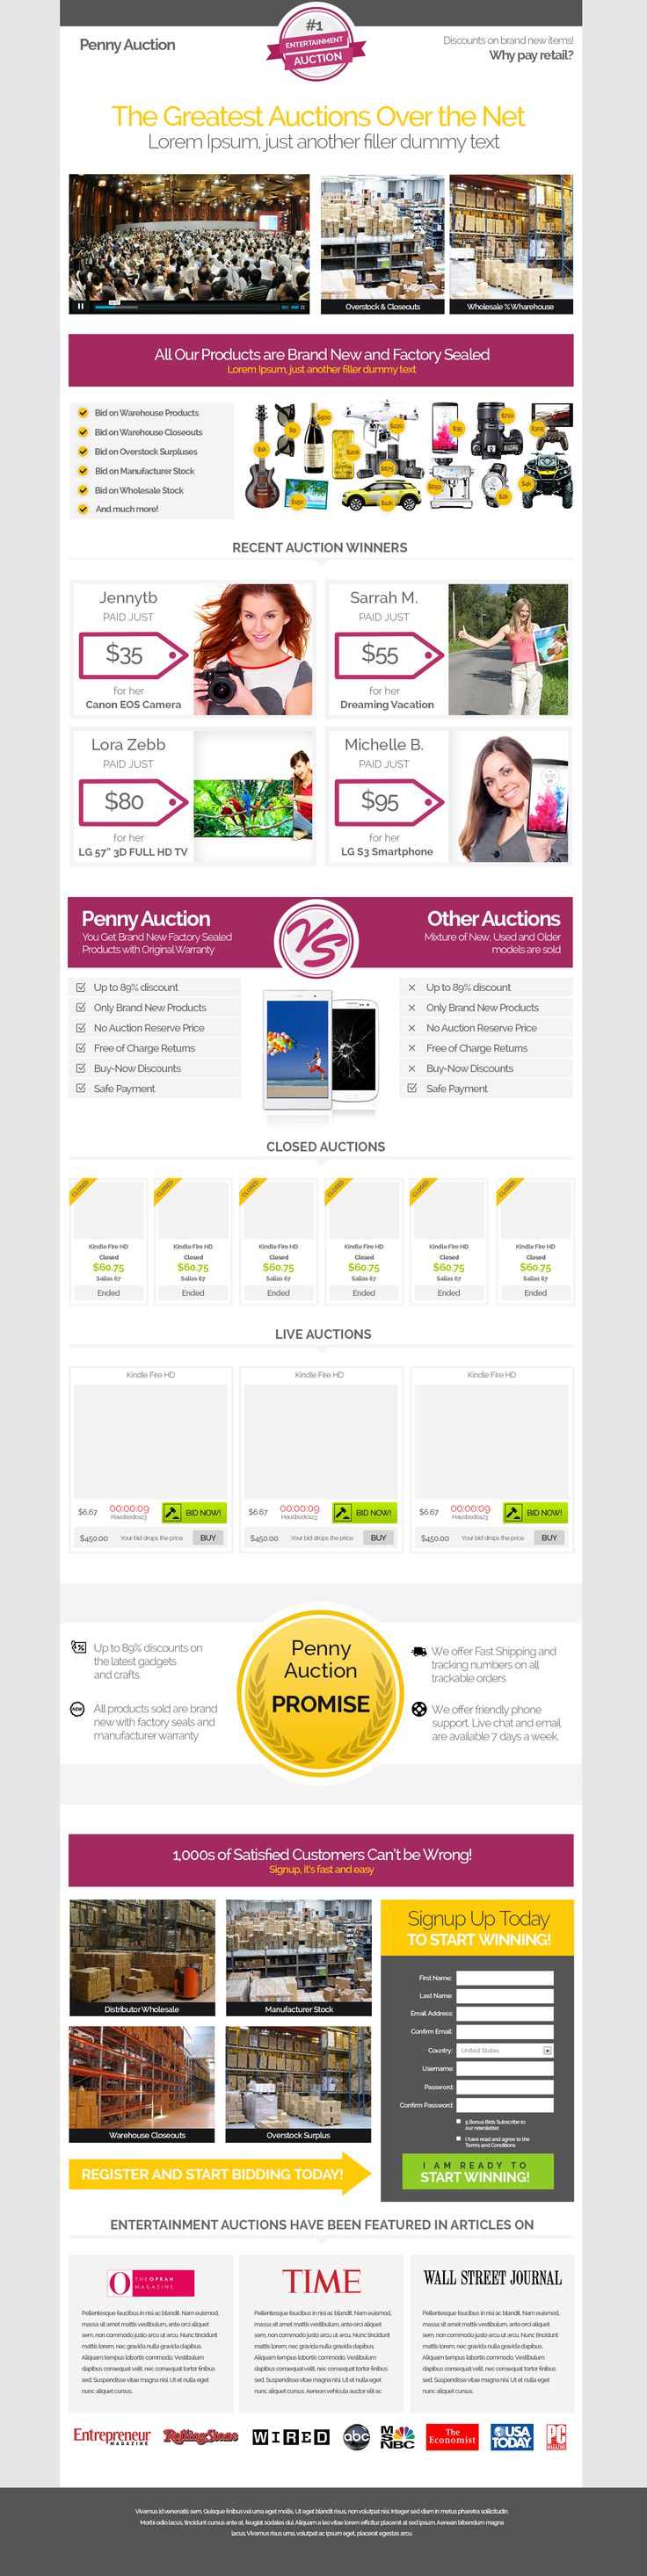 Auction Website Template 8 Best Website Template Design Images On Pinterest  Design